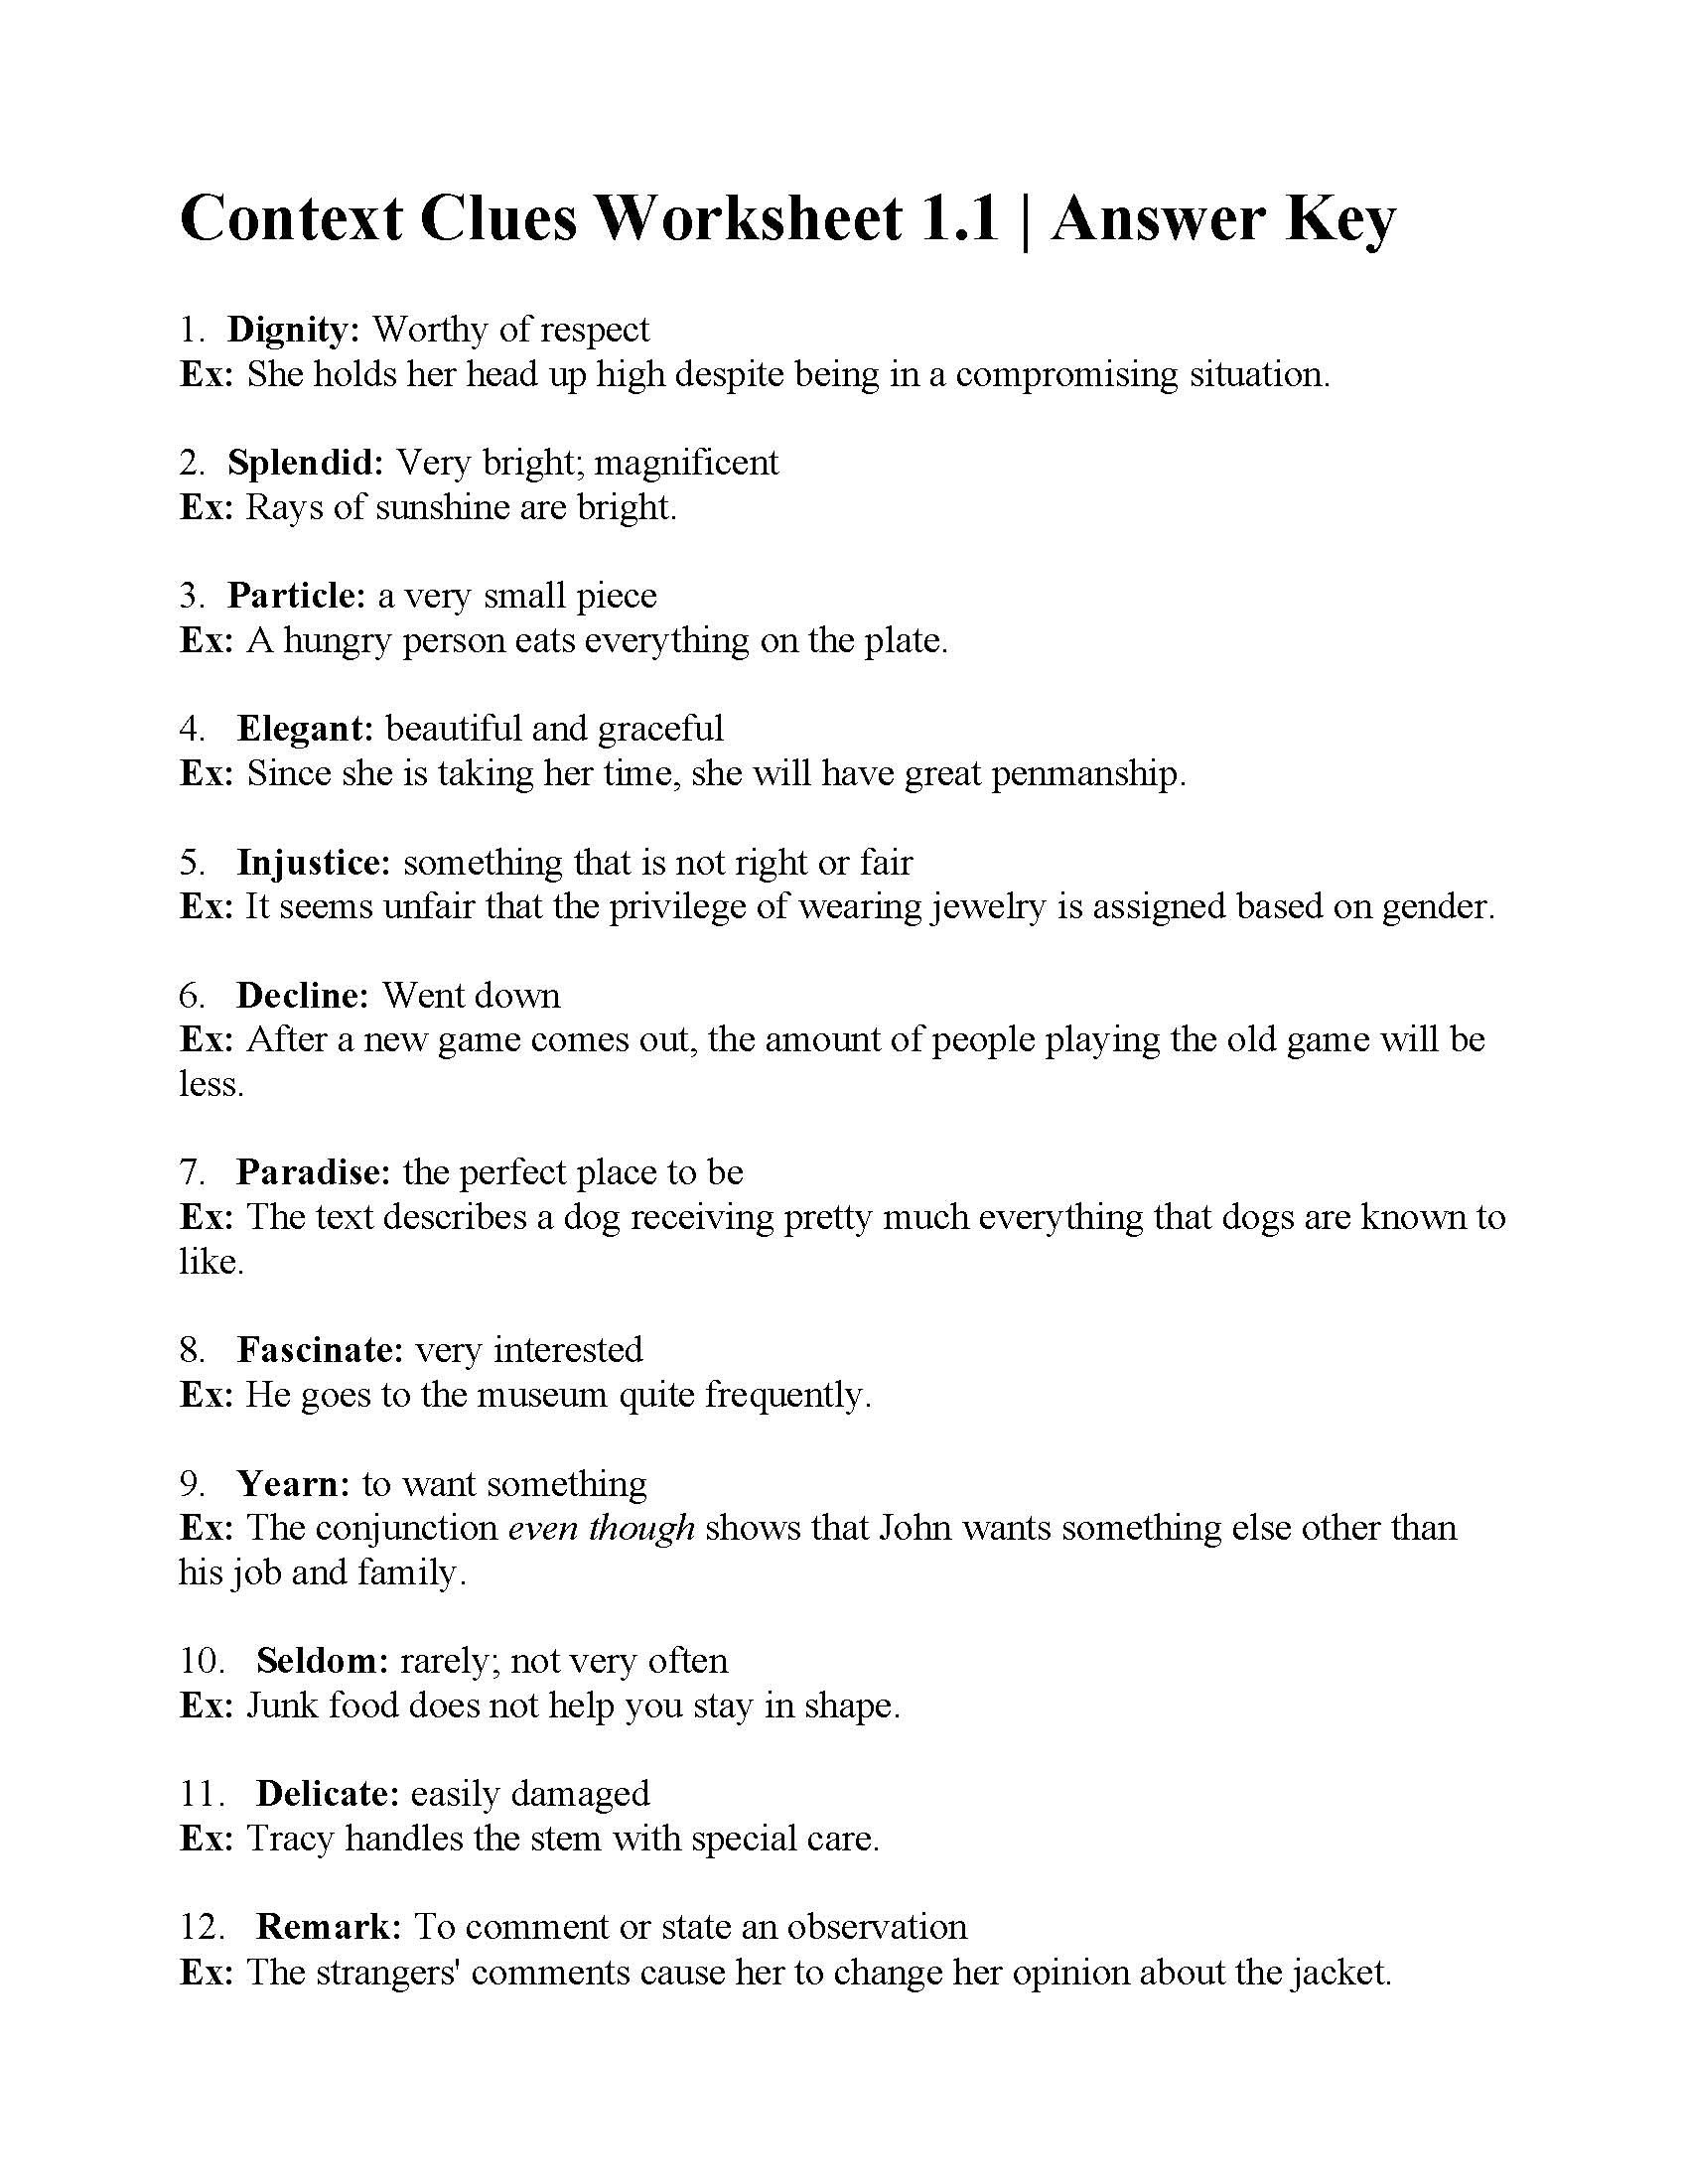 Context Clues Worksheets 3rd Grade Teacher Worksheets Context Clues